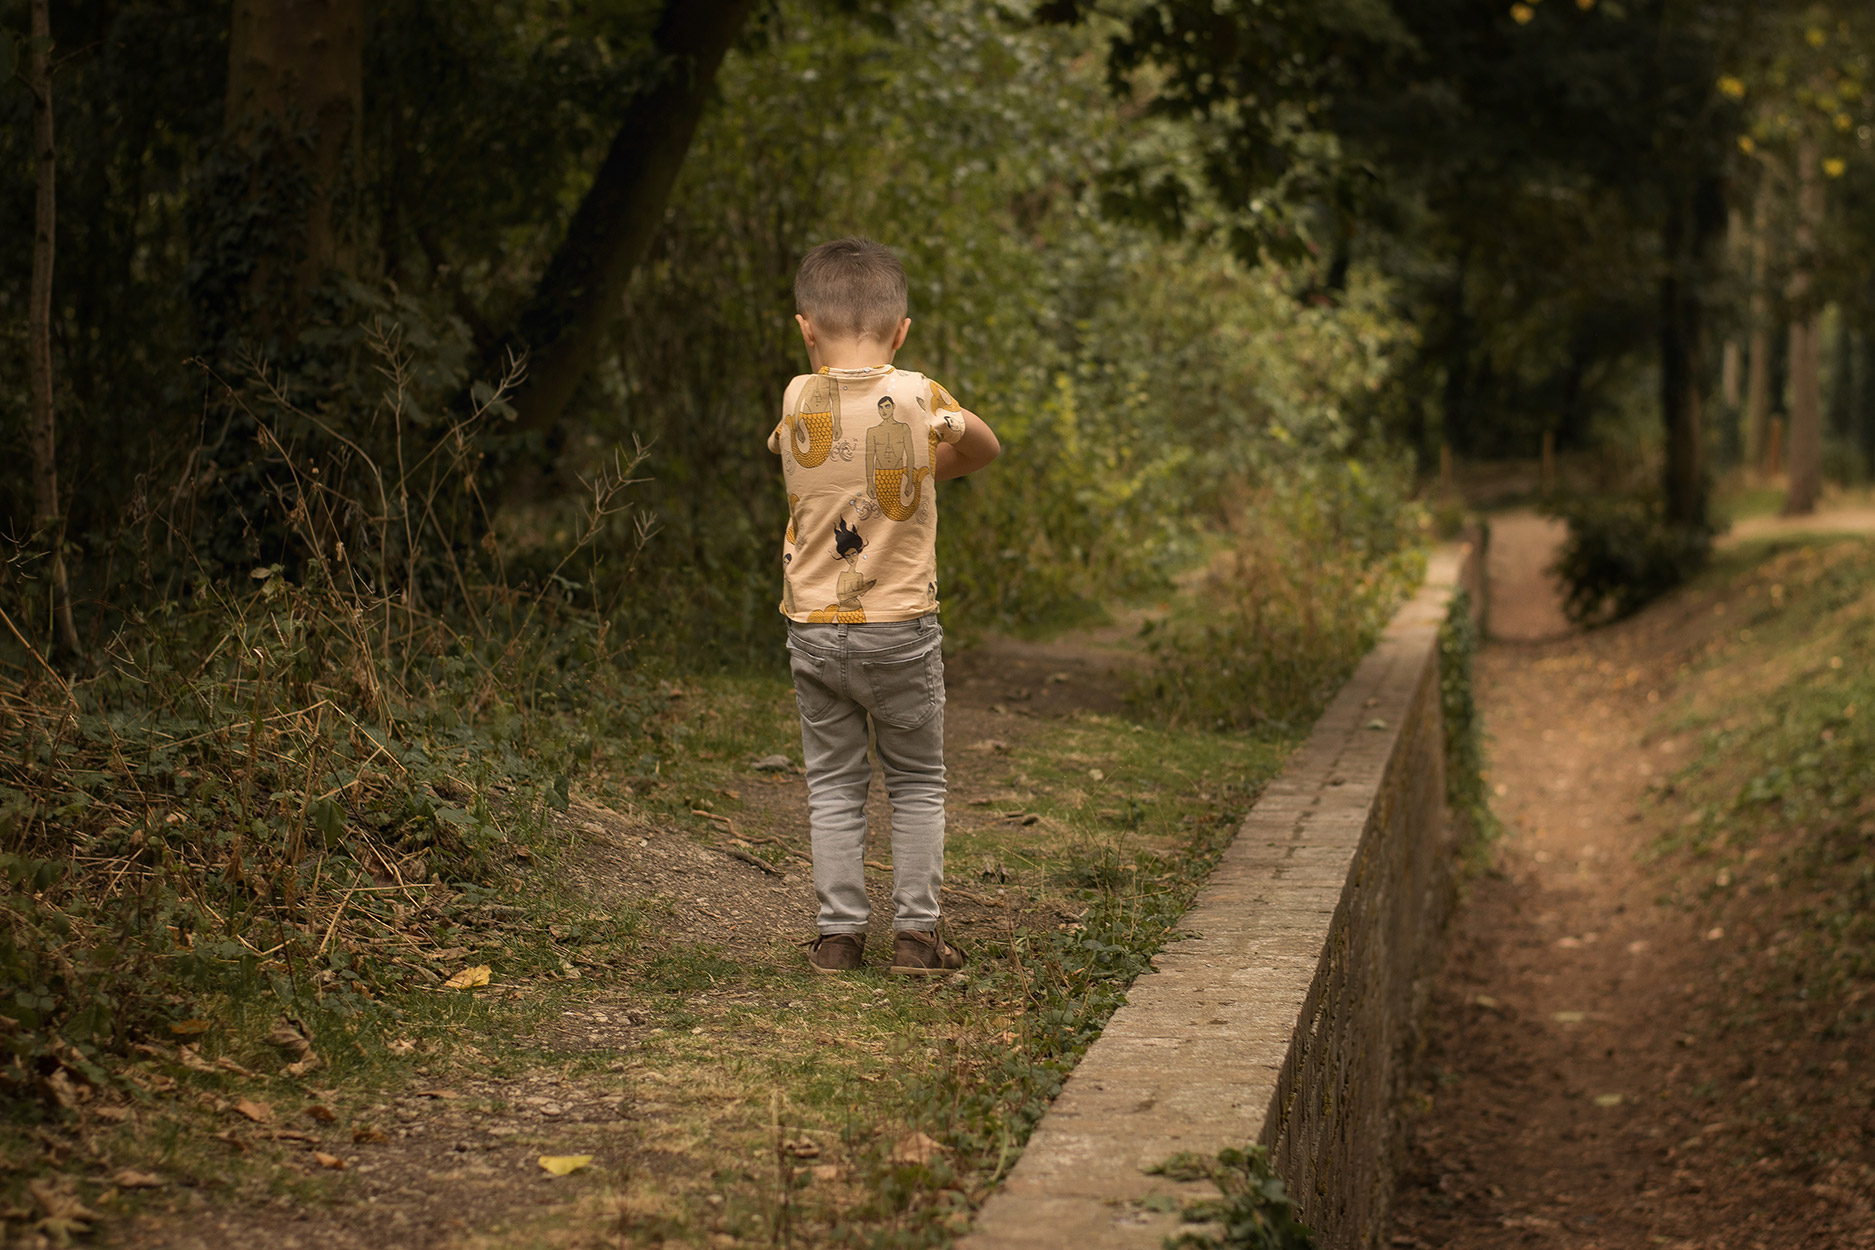 Toddler wearing Bobo Choses, Hugo Loves Tiki and Bobux walking amongst the grass at the park